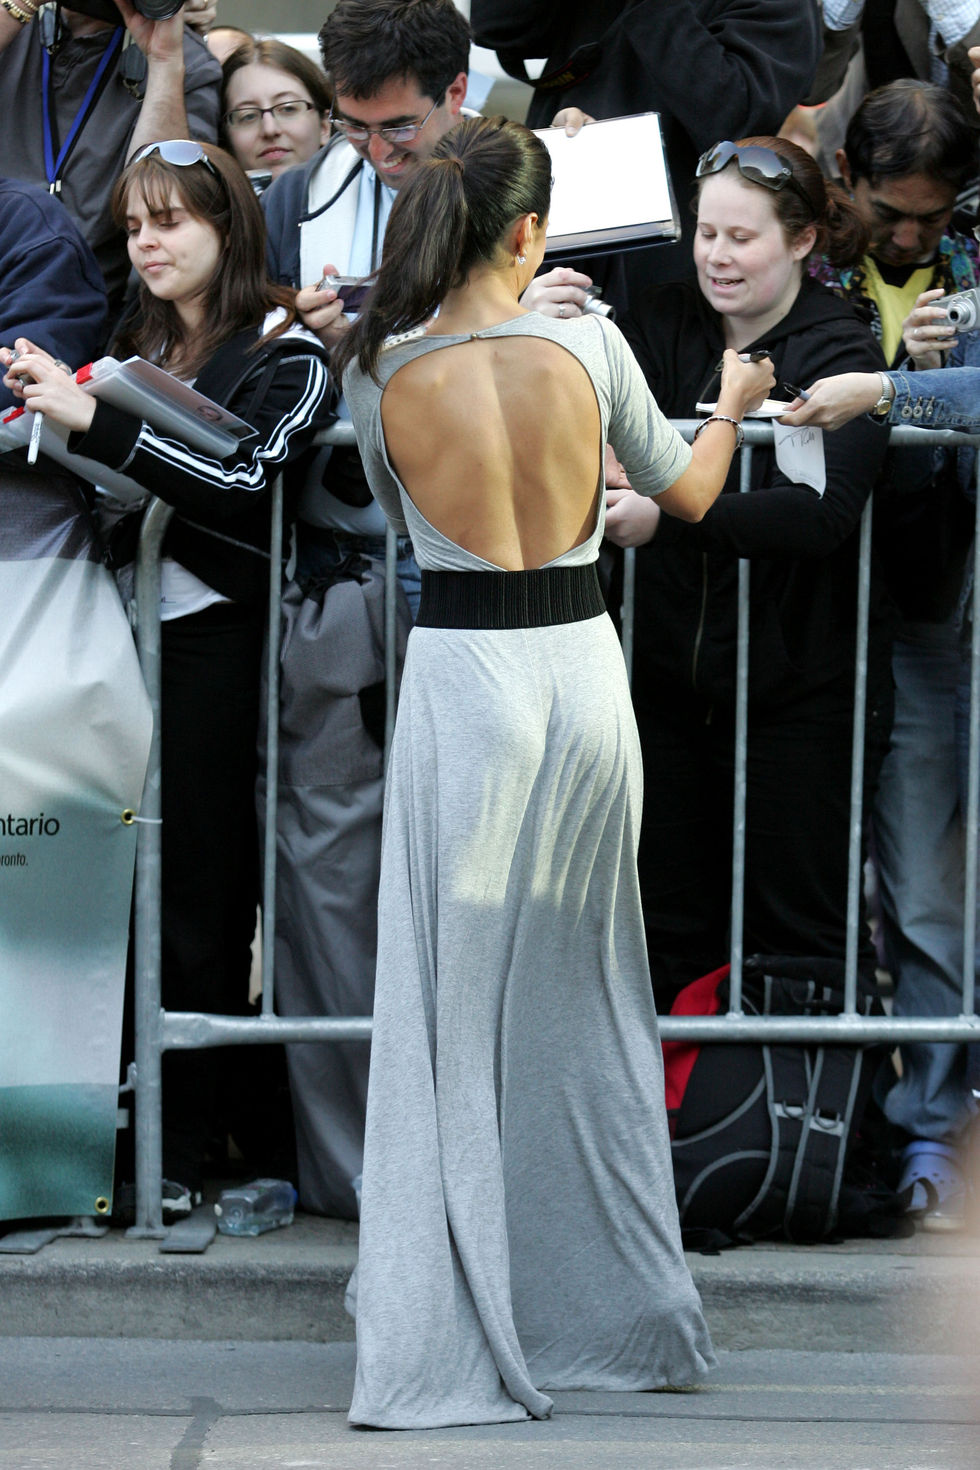 emmanuelle-chriqui-the-lucky-ones-premiere-in-toronto-01